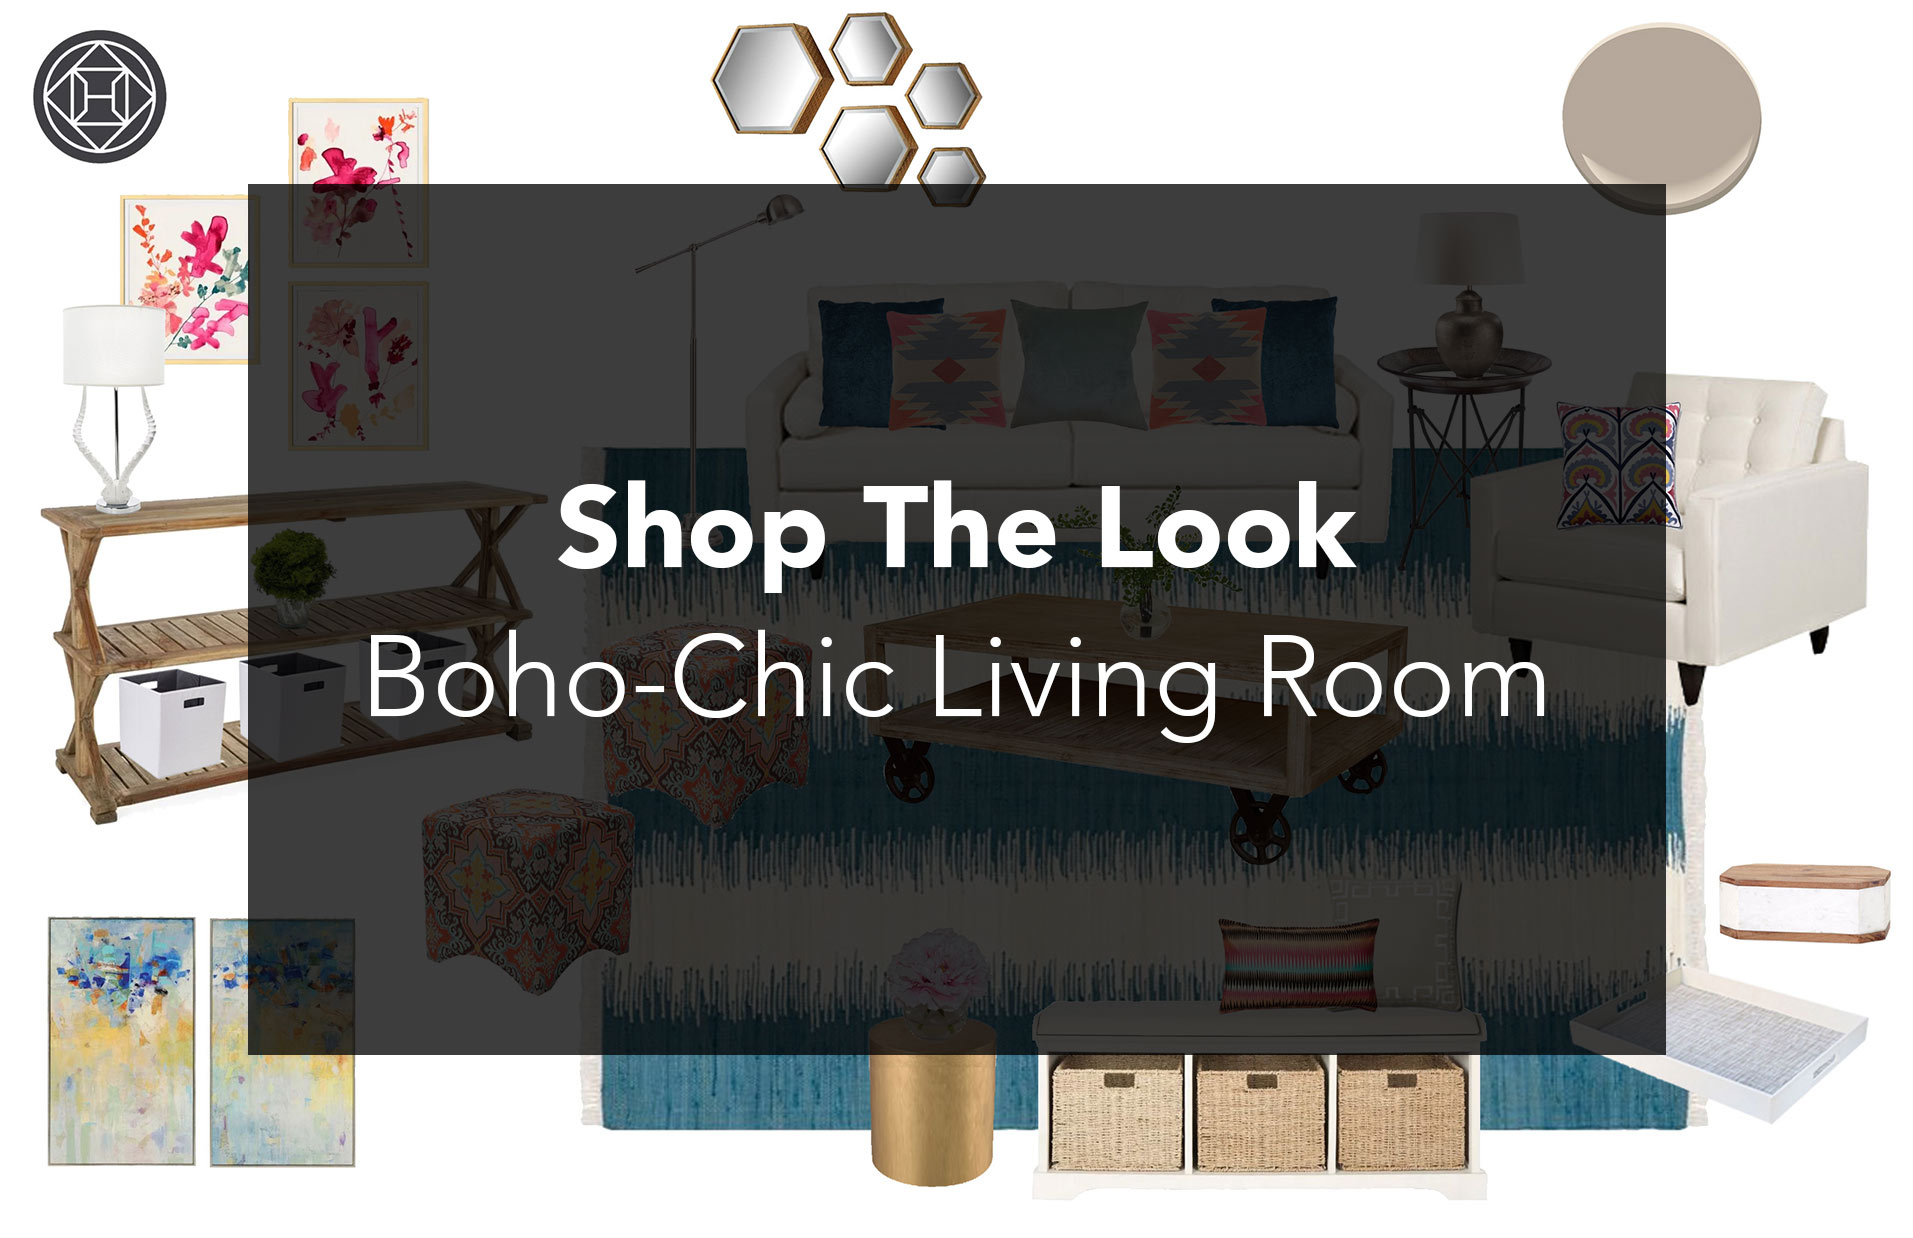 Shop The Look A Boho Chic Living Room